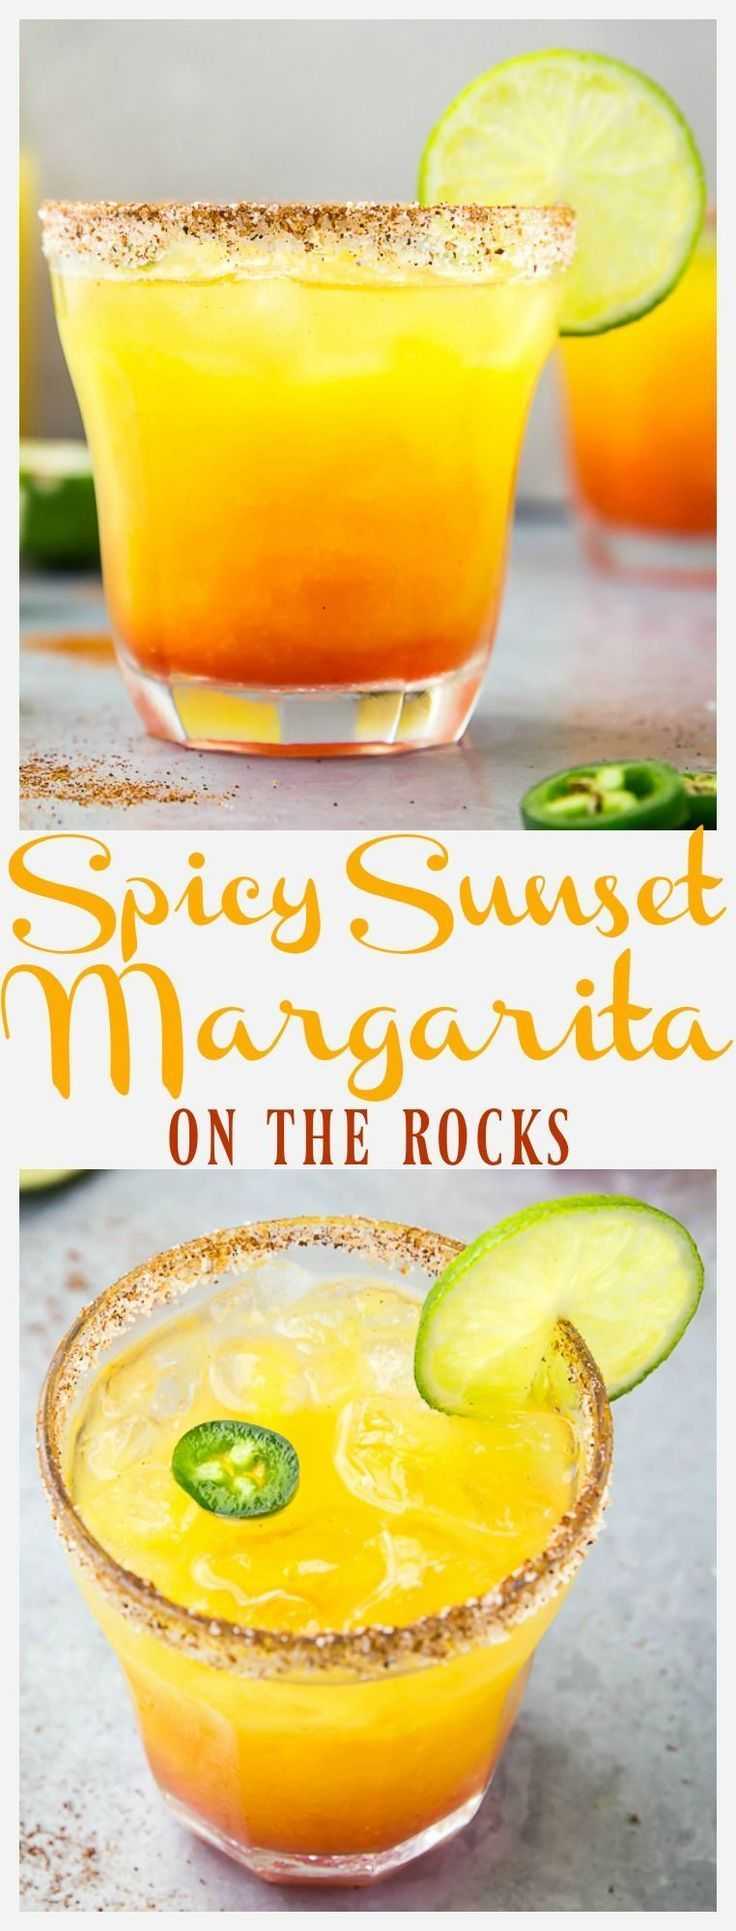 Spicy Sunset Margarita On The Rocks | This is a fruity, fiery twist on the classic Mexican cocktail. Flavored with mango, pineapple, jalapeno and grenadine, this tropical tequila libation is sure to get the party started! @nospoonn #tequiladrinks